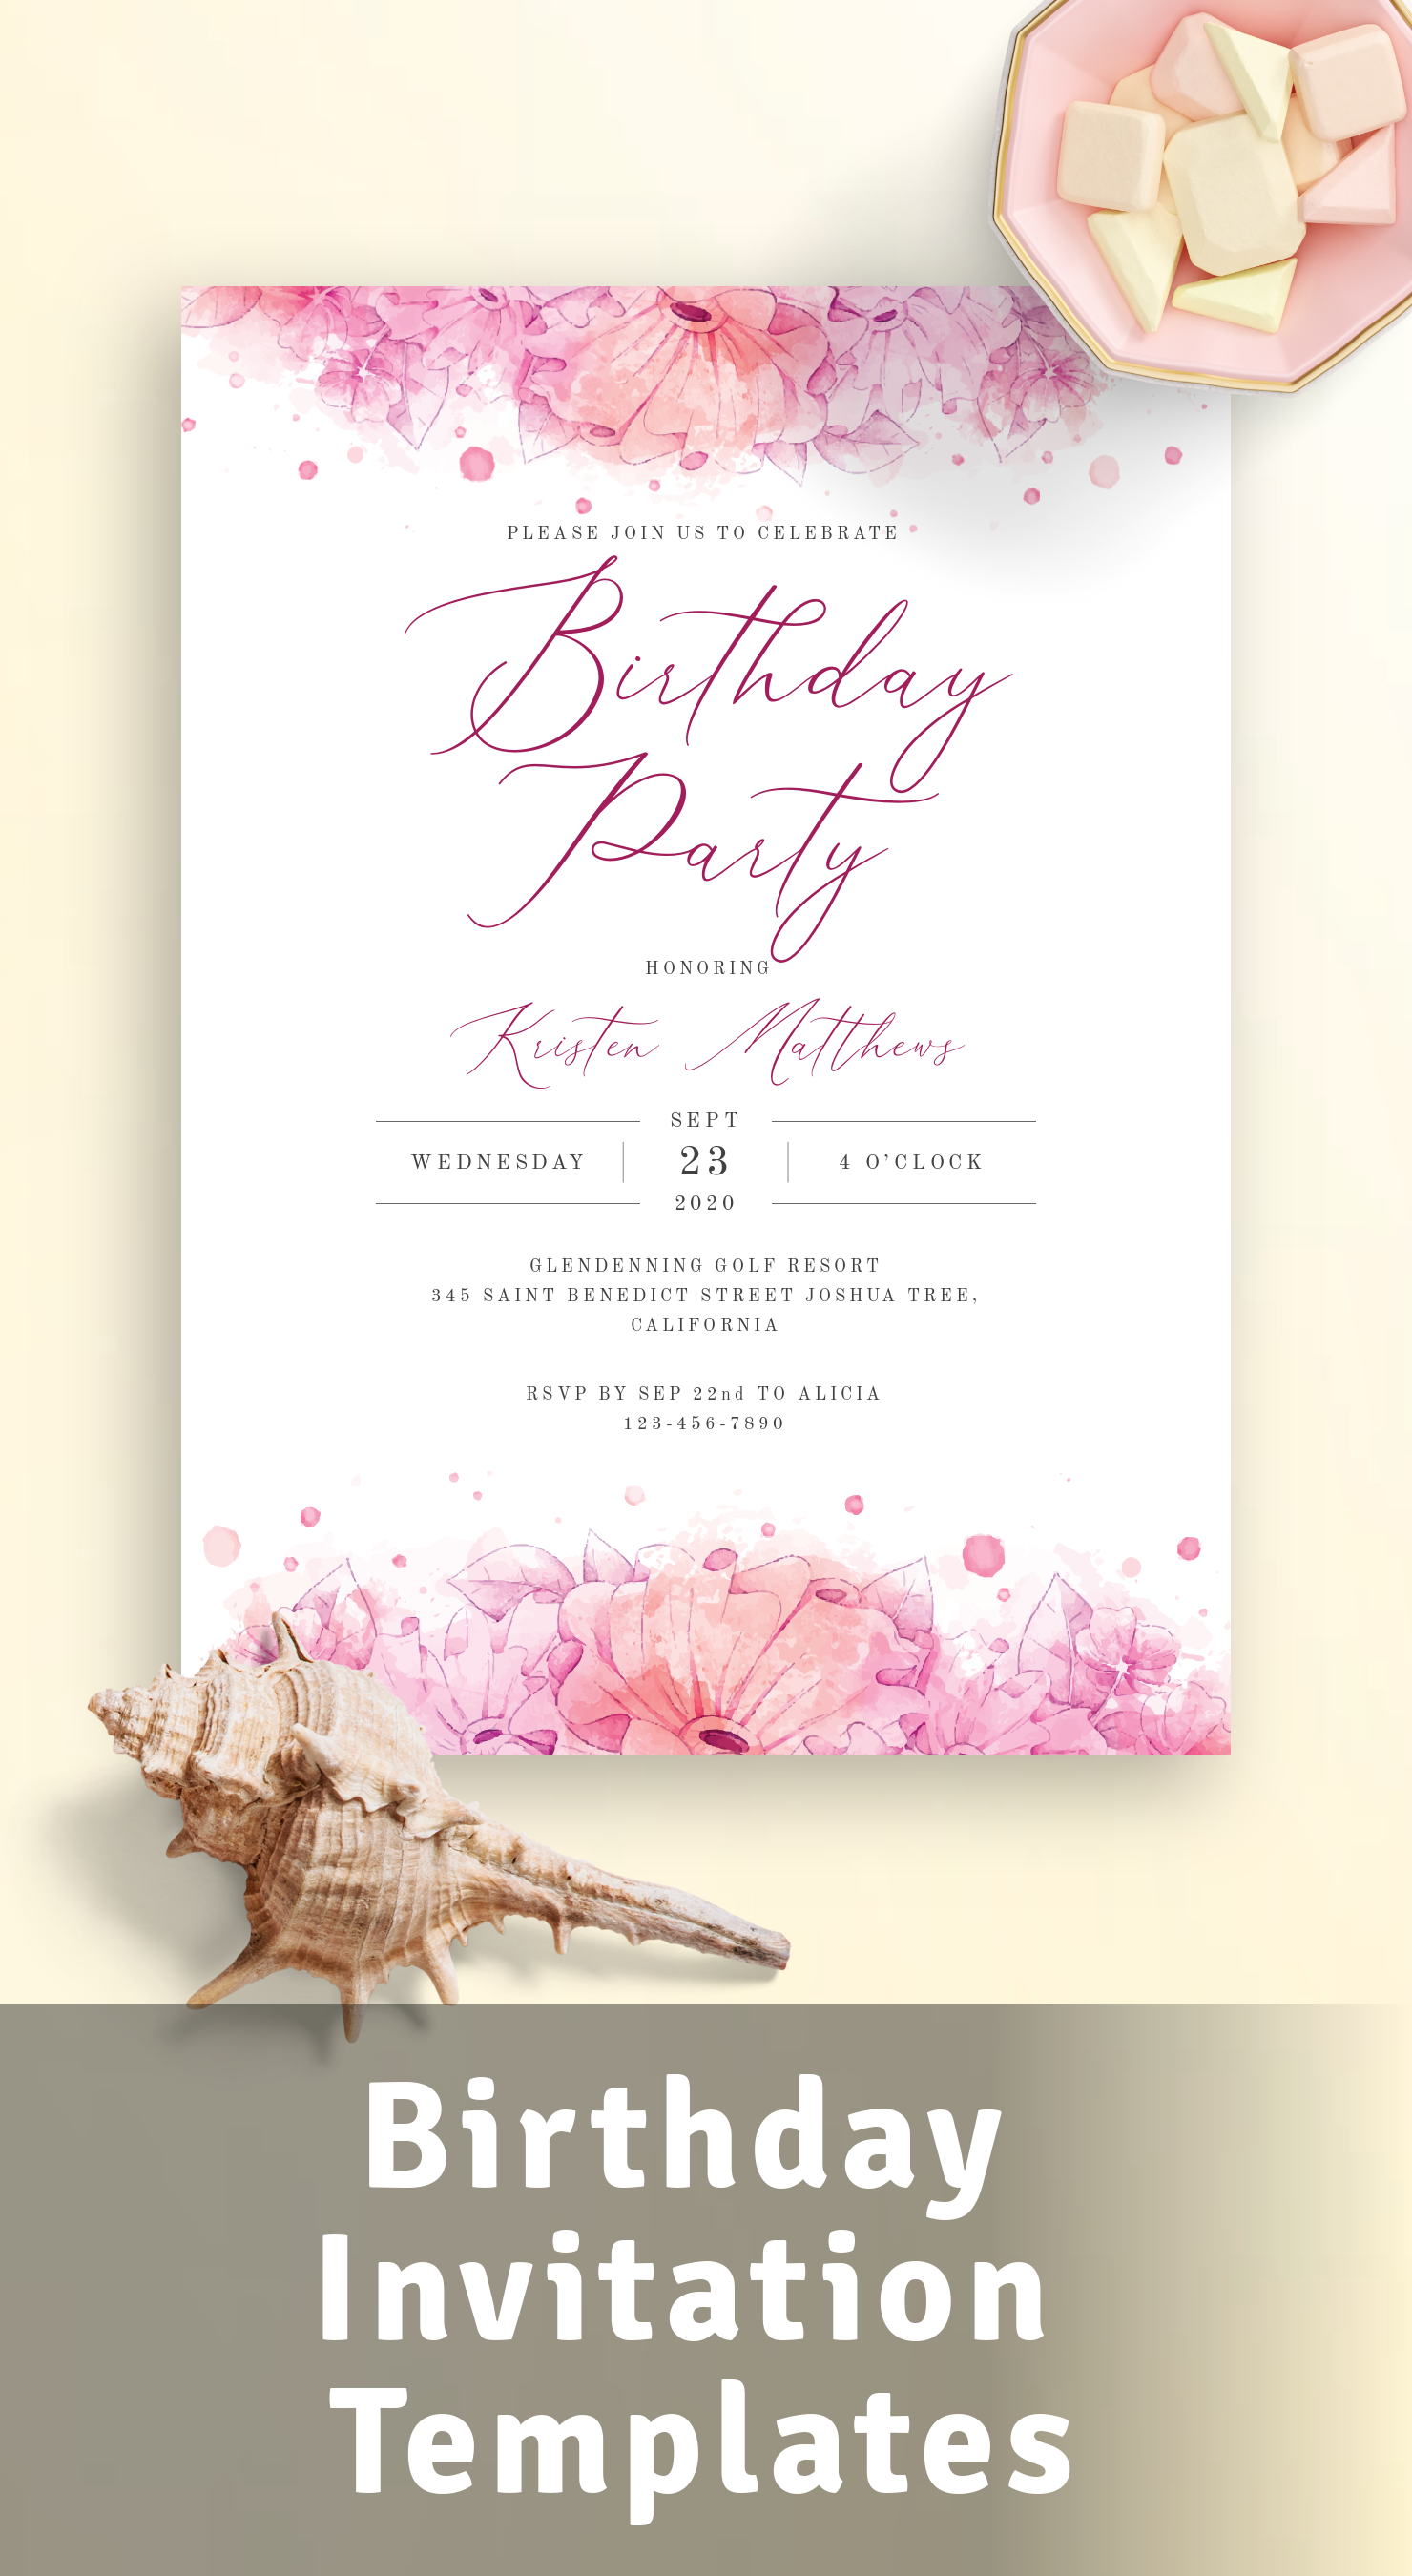 Best Birthday Invitation Templates